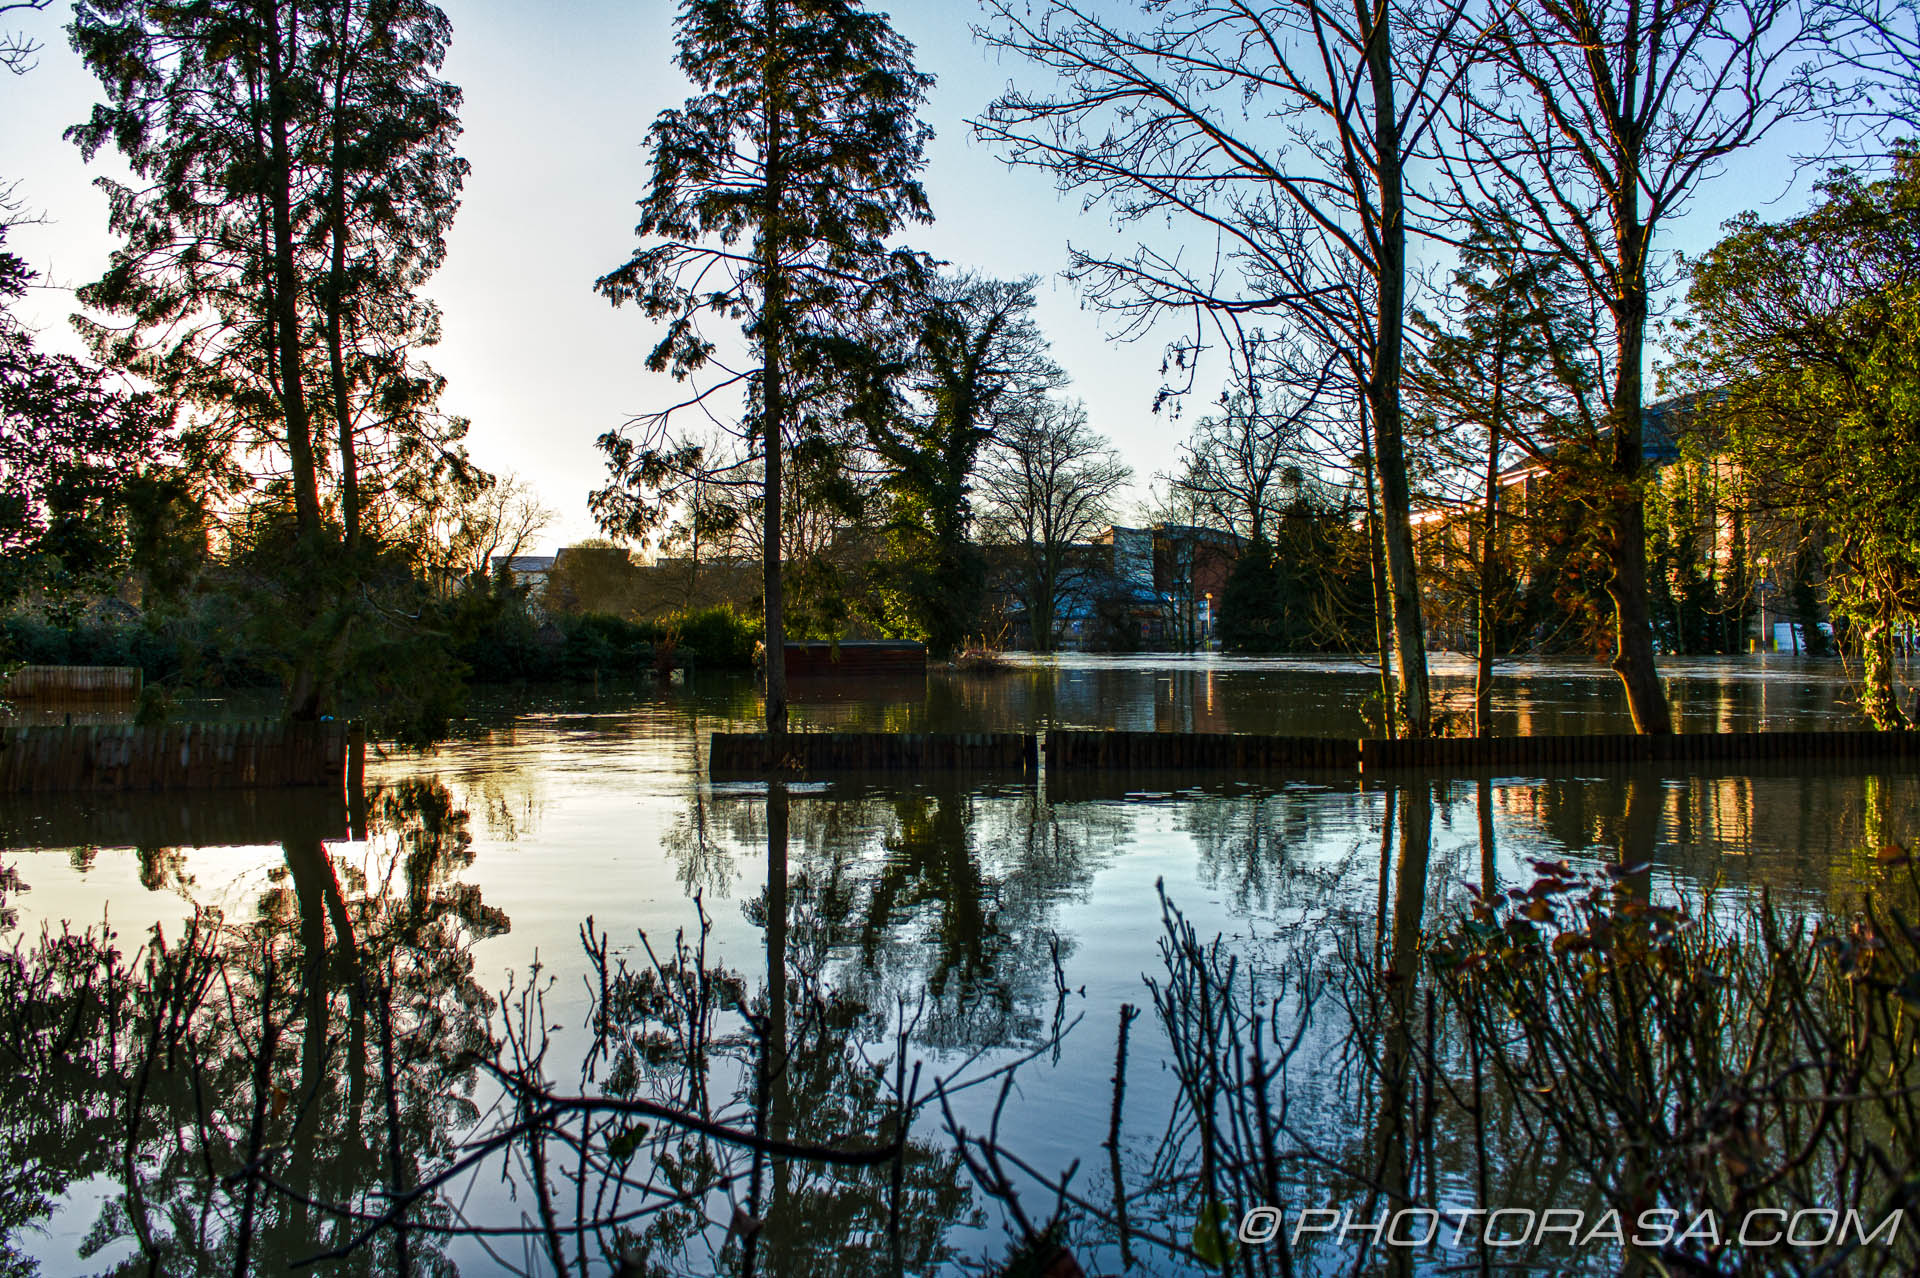 http://photorasa.com/wet-xmas-maidstone-river-medway-floods-town-centre/looking-upstream-to-tovil-through-submerged-trees/